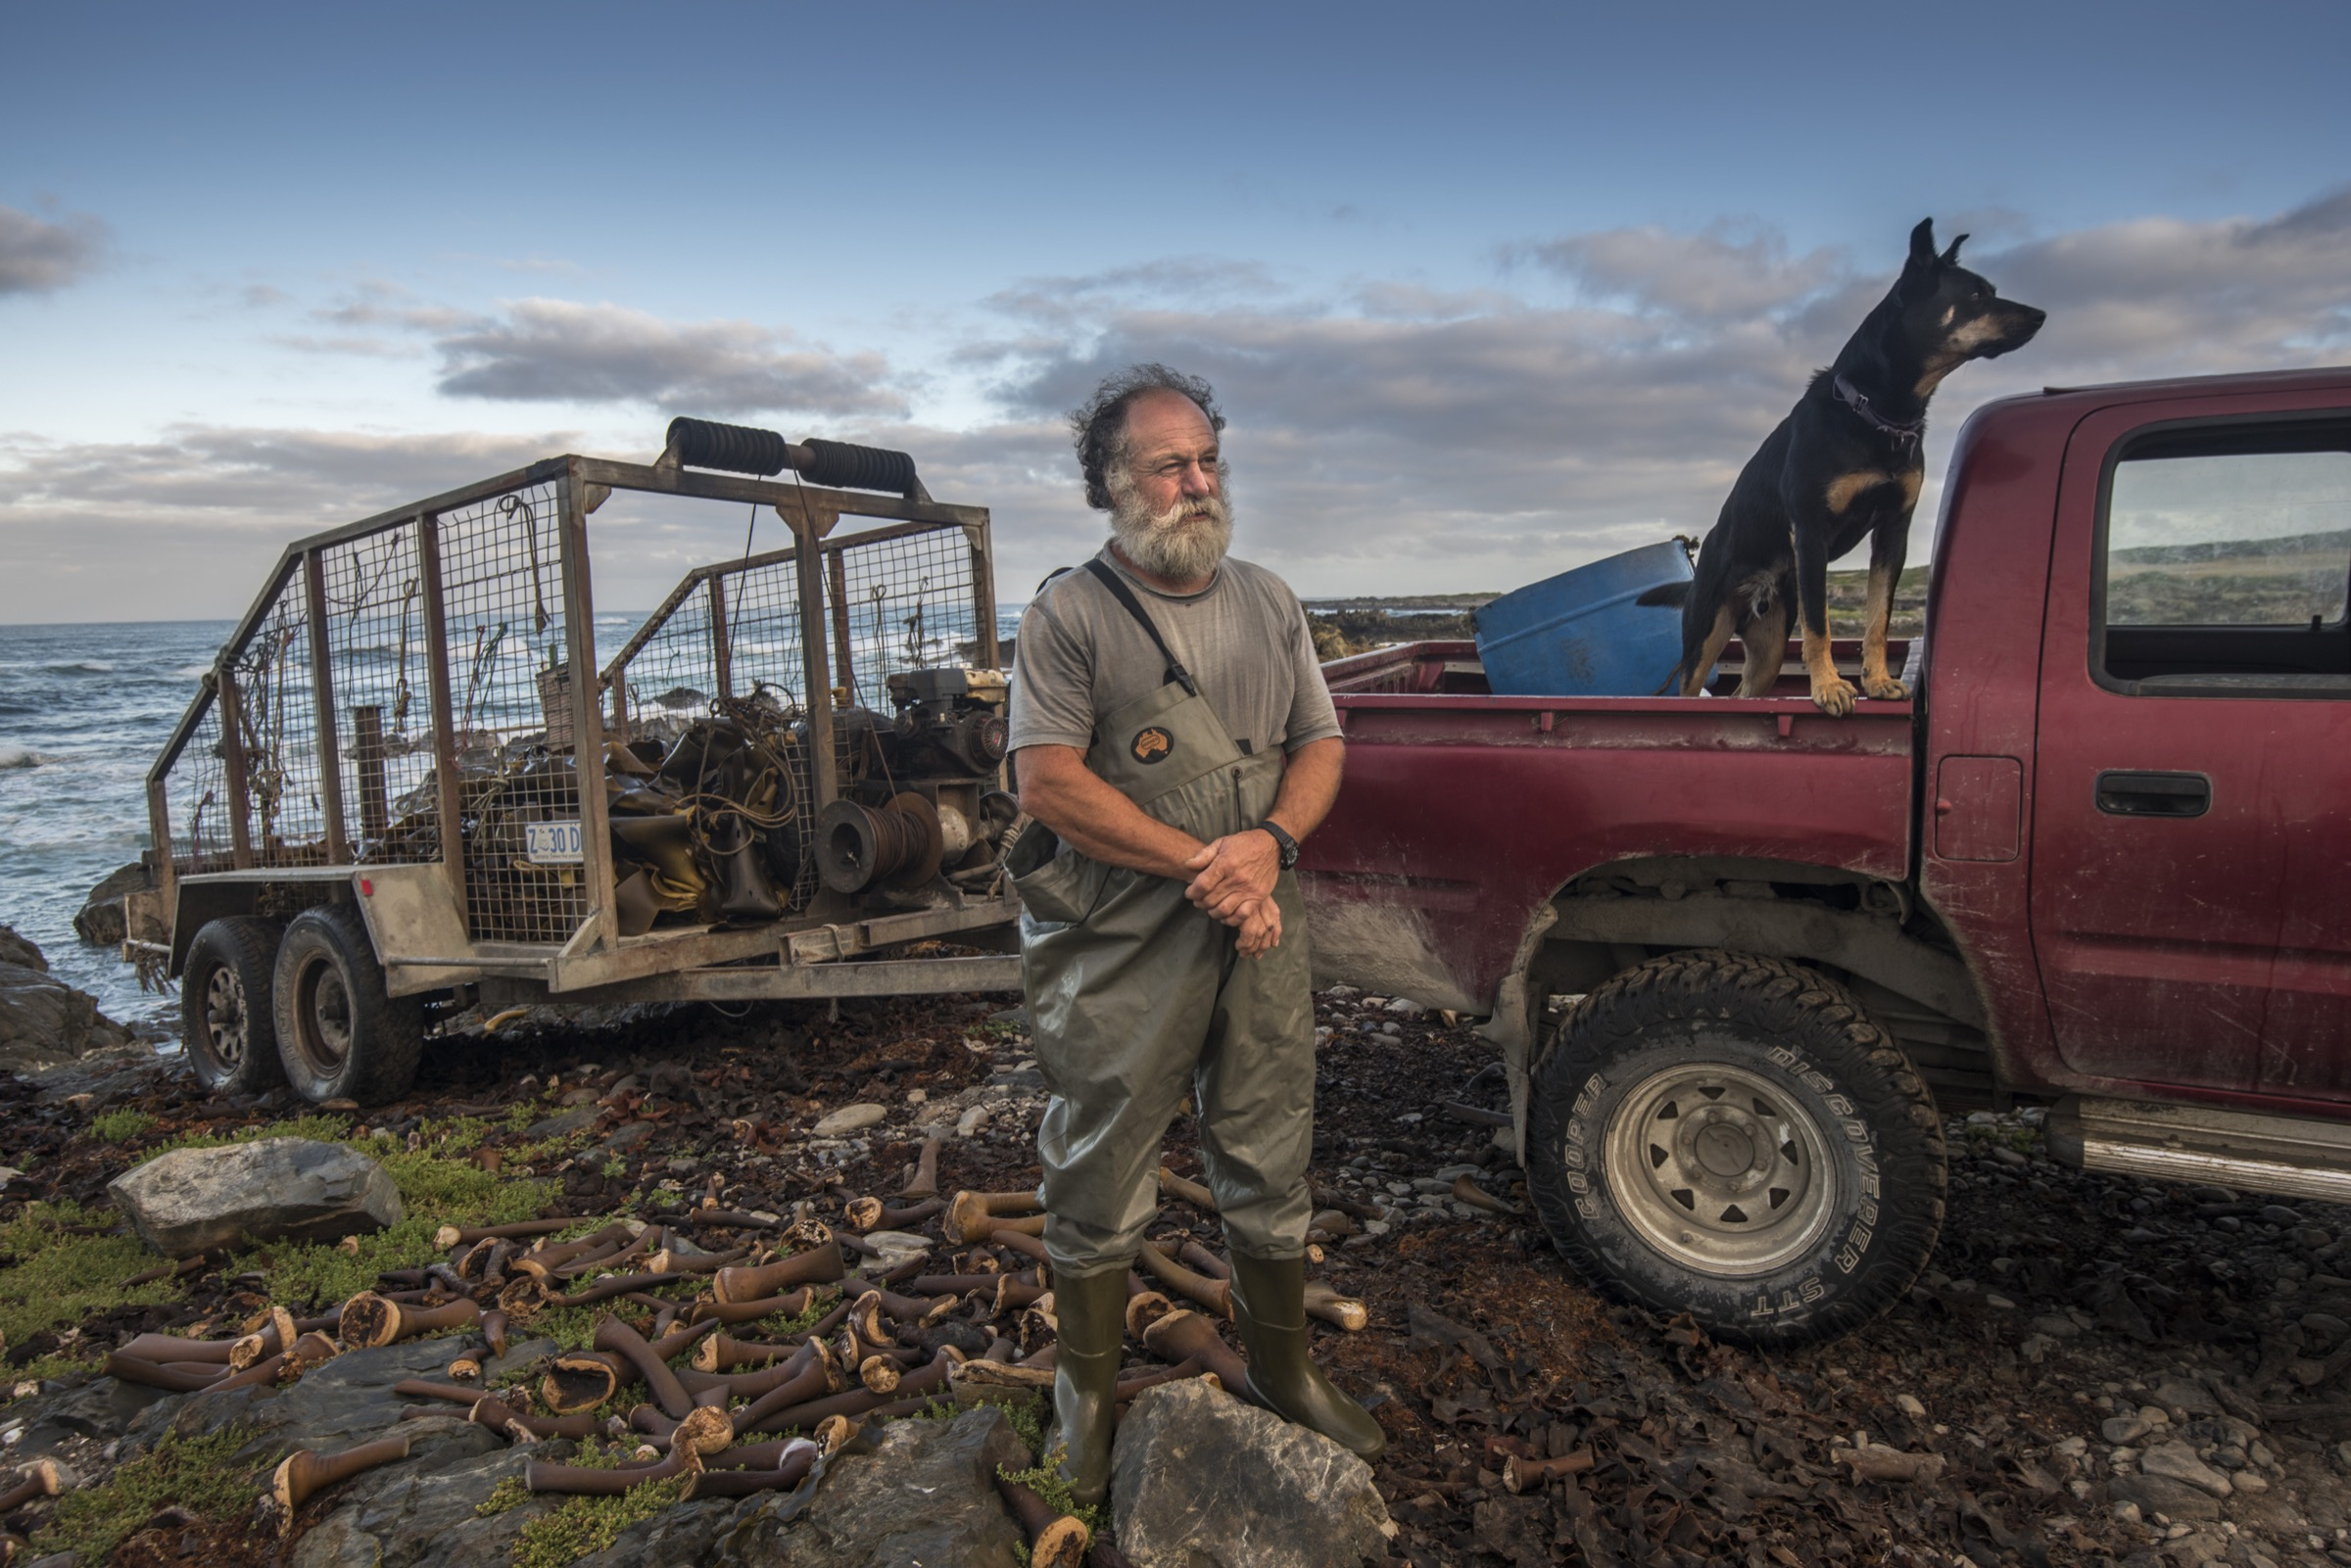 Commercial kelp harvester John and his kelpie Bruce photographed with a trailer of bull kelp (Durvillaea potatorum) on King Island, Tasmania.